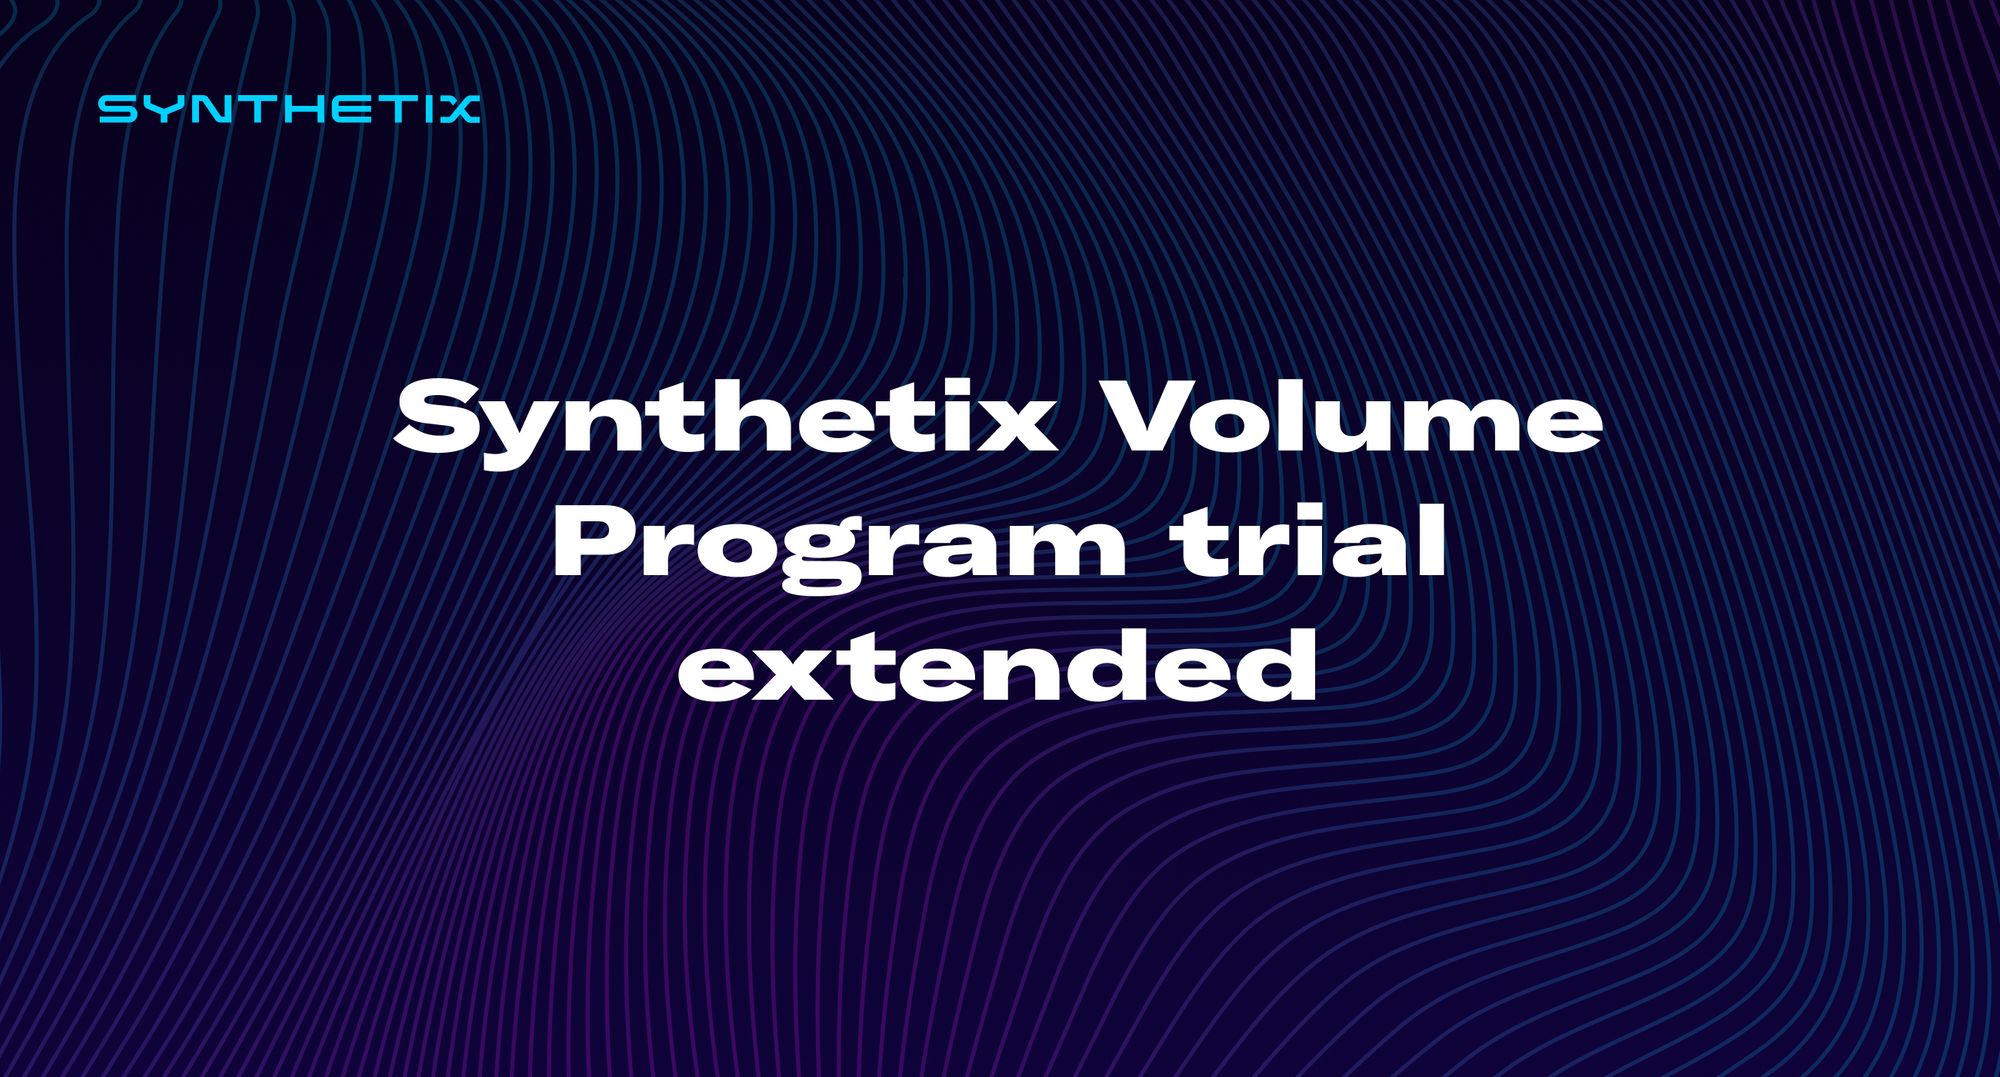 Synthetix Volume Program trial extended